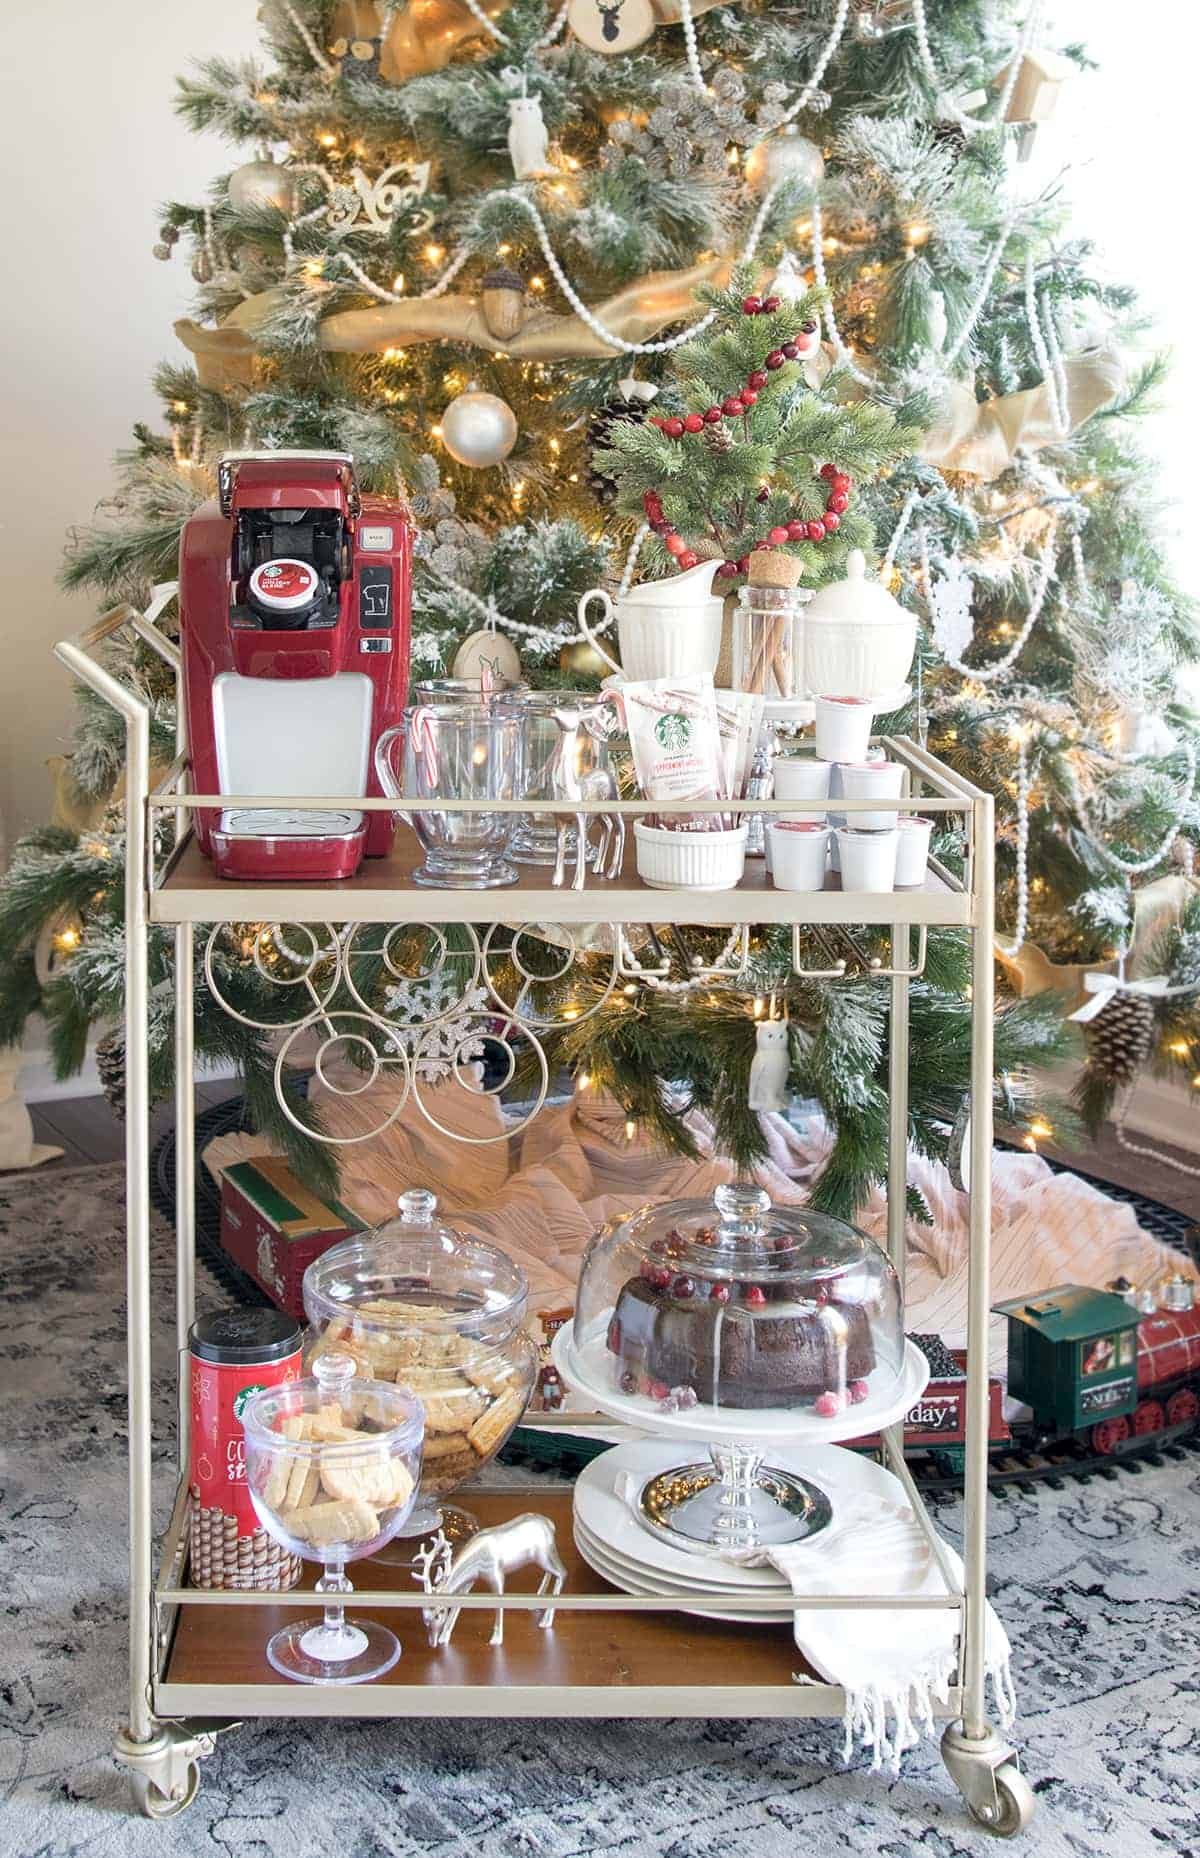 Coffee cart complete with coffee maker, cups, single pod coffees and all the fixings. Dessert cases and dessert plates line the bottom shelf of cart. Christmas tree with toy antique train in background.